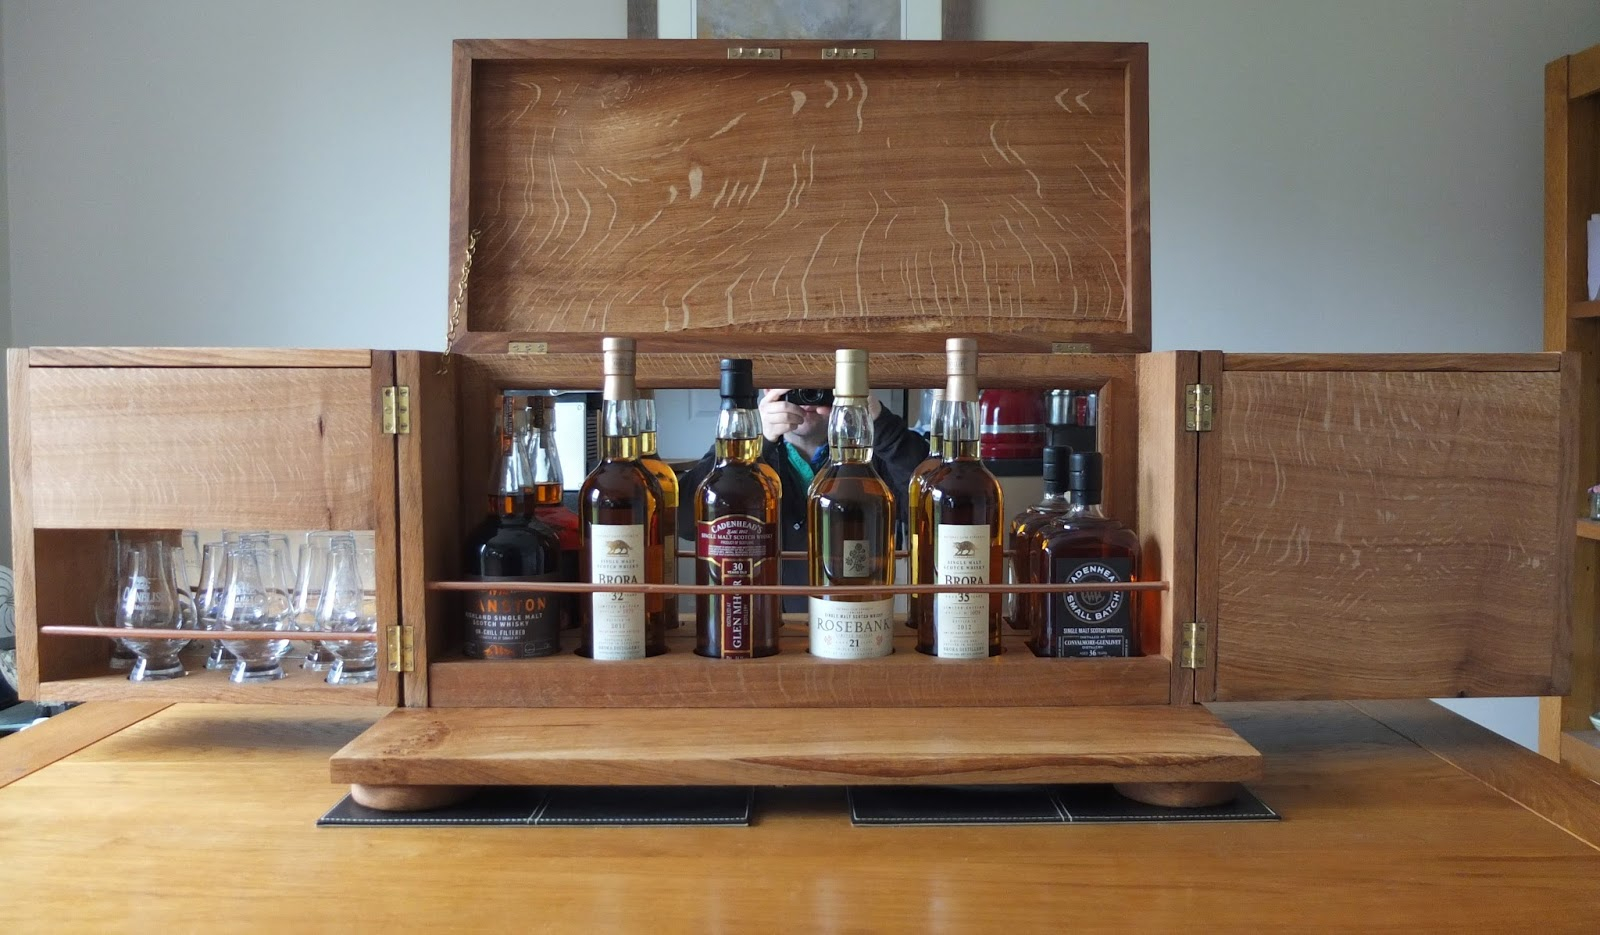 The Whisky Display Cabinet Malt Whisky Reviews with regard to size 1600 X 935